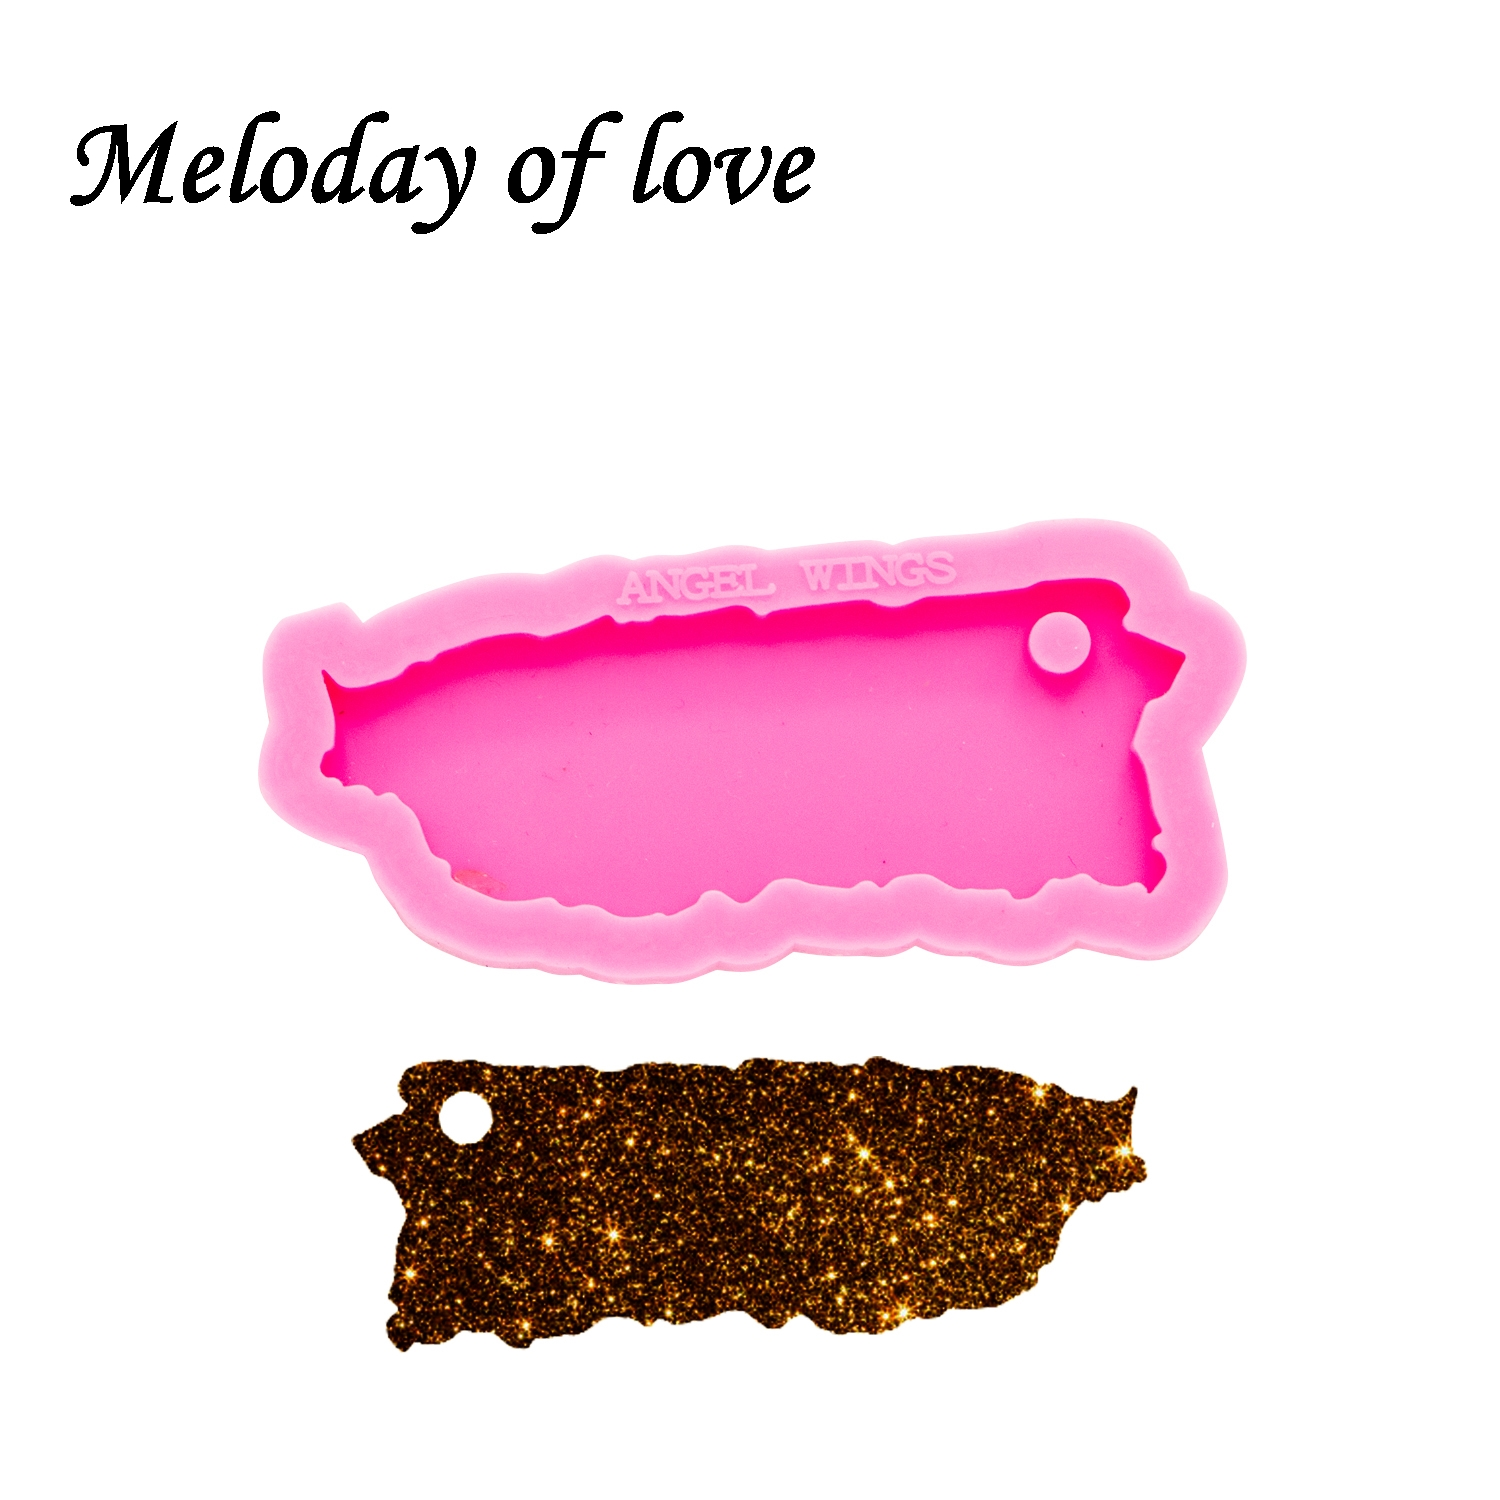 Shiny Glossy Puerto Rico Silicone Mold Diy State Map Epoxy Resin Molds Jewelry Making Custom Mould Keychain DY0266